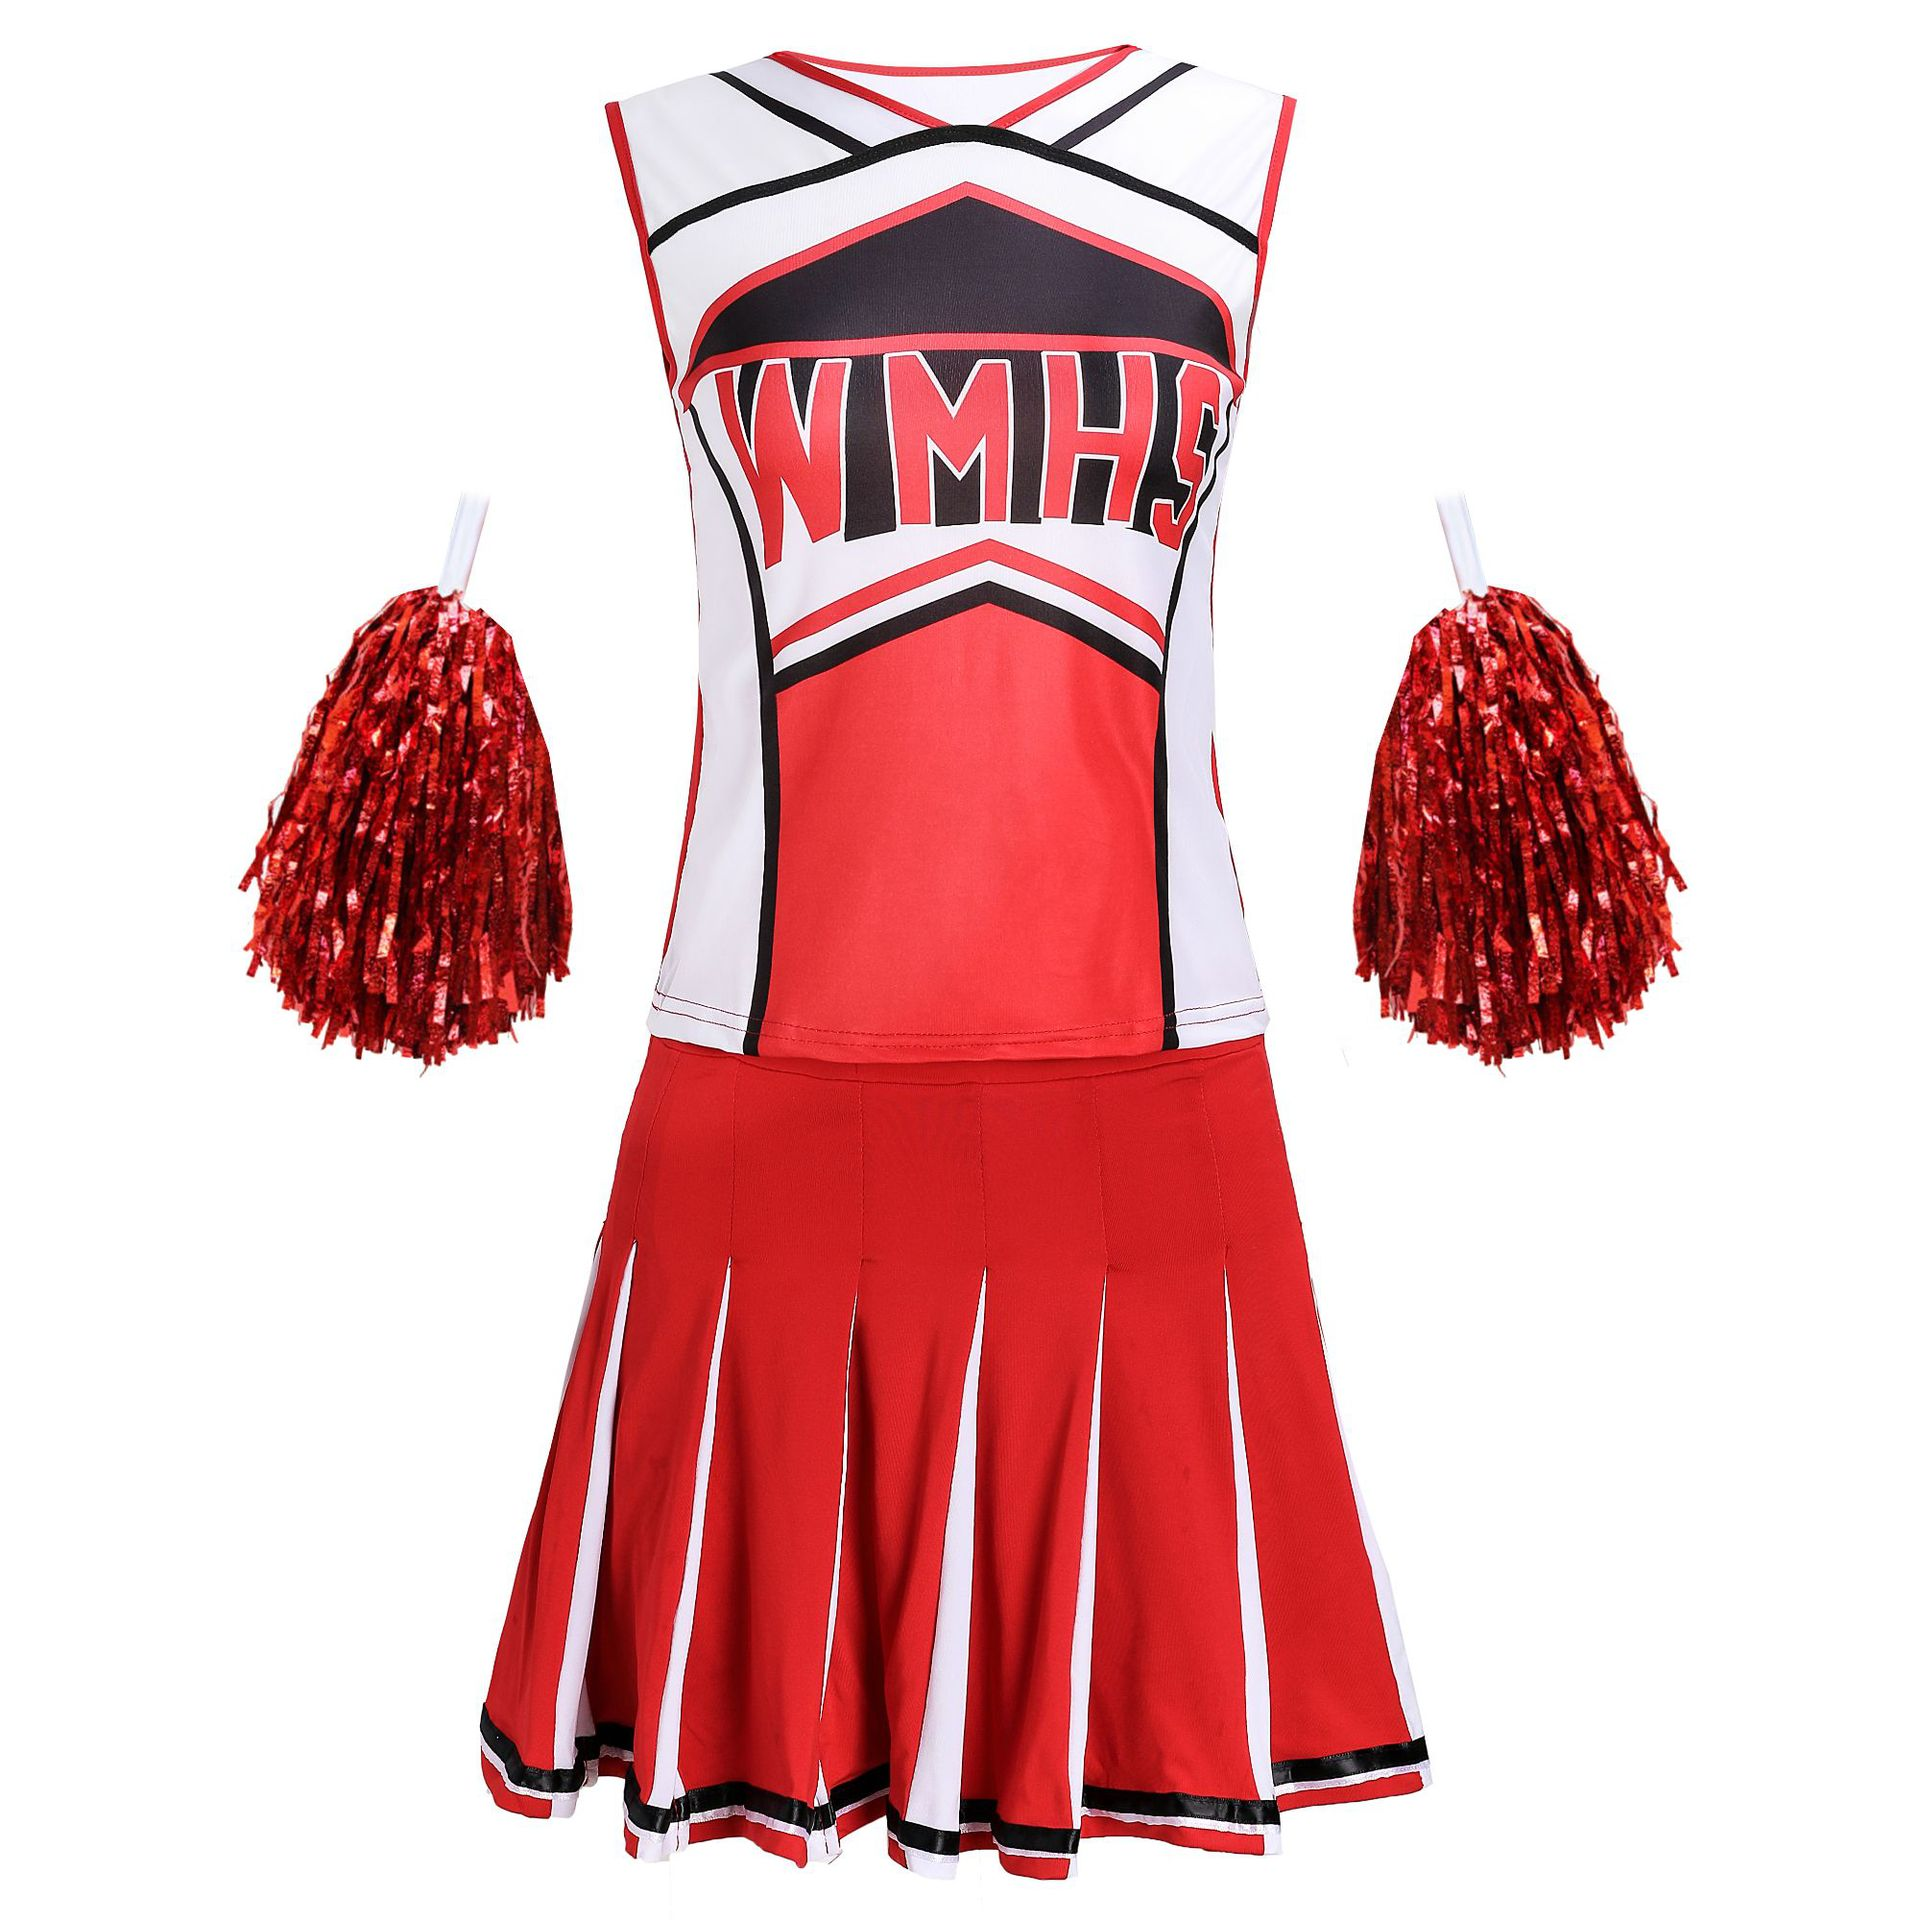 Cheerleader Costume Schoolgirl Lingerie Tank Top Petticoat Pom Cheerleader 2 Pcs Suit Red Nightclub Party Football Baby Uniform